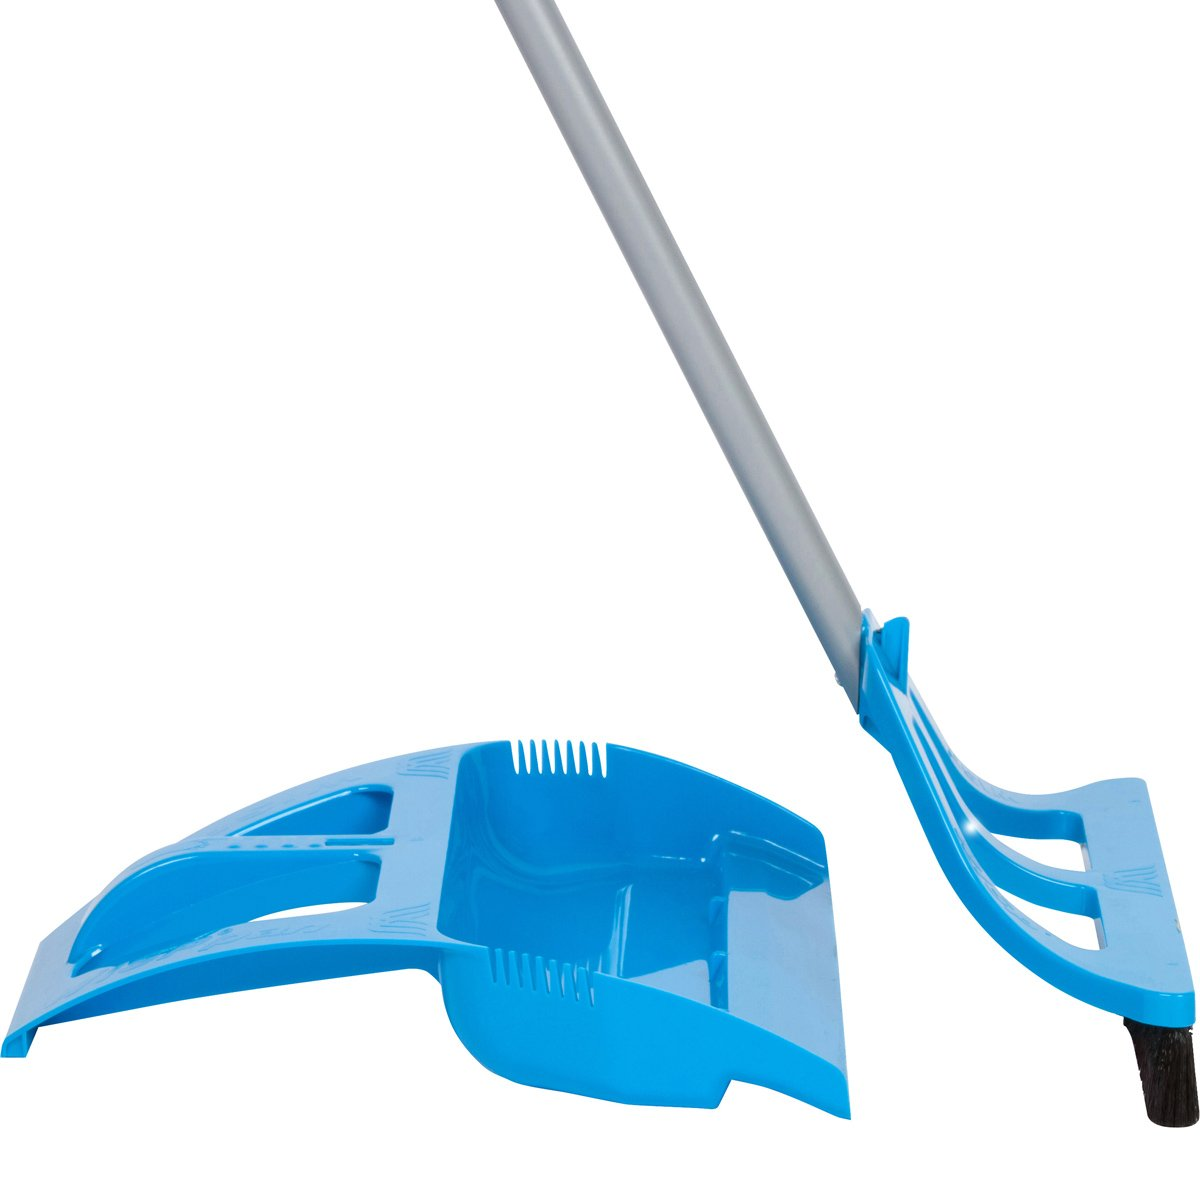 WISPsystem Best 90 Degree Angle One-Handed Broom with Dustpan and Telescoping Handle w/Bristle Seal Technology (Blue)